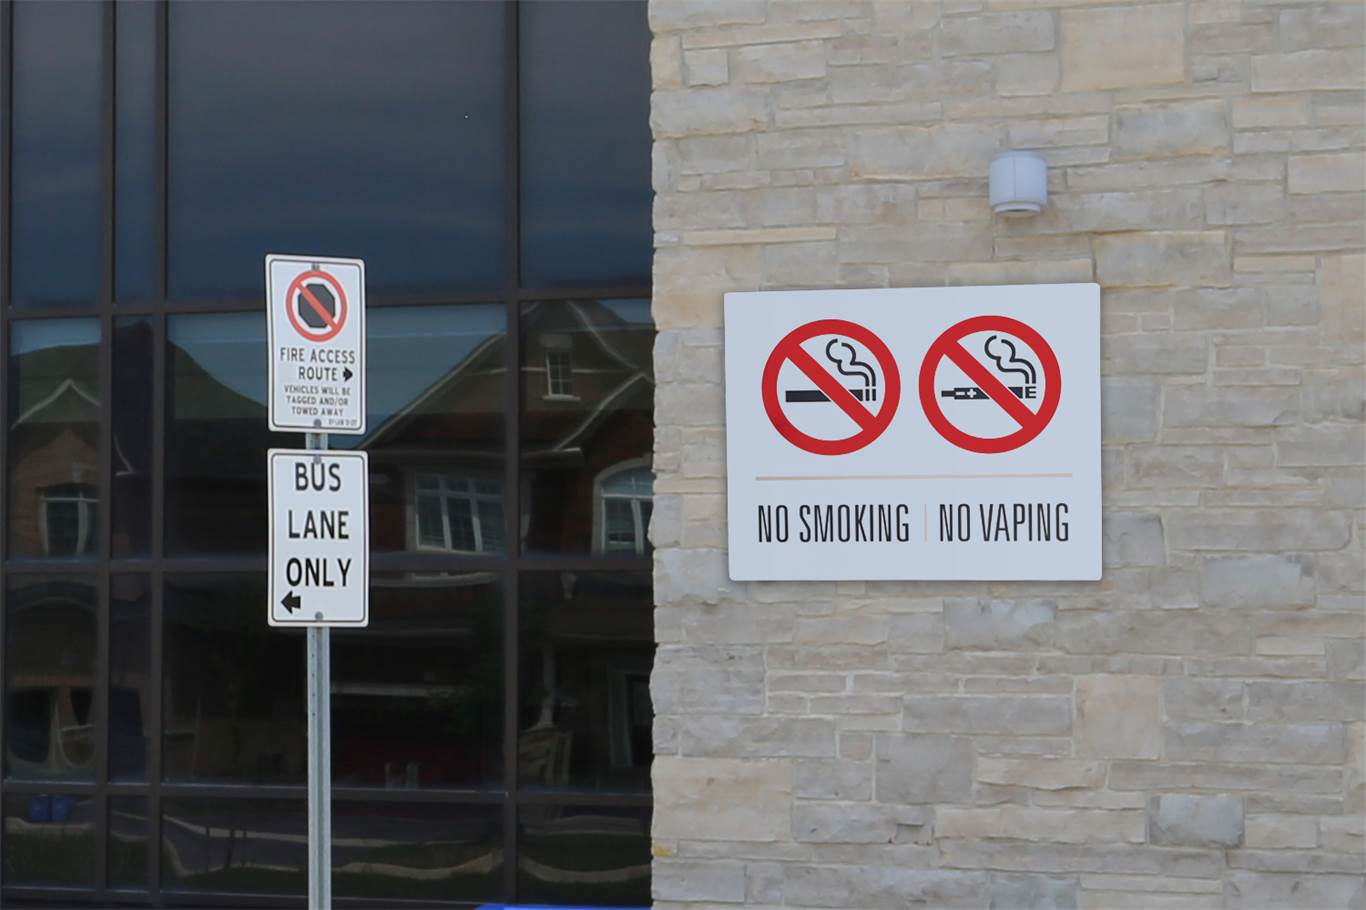 New Rules for Smoking and Vaping on School Property